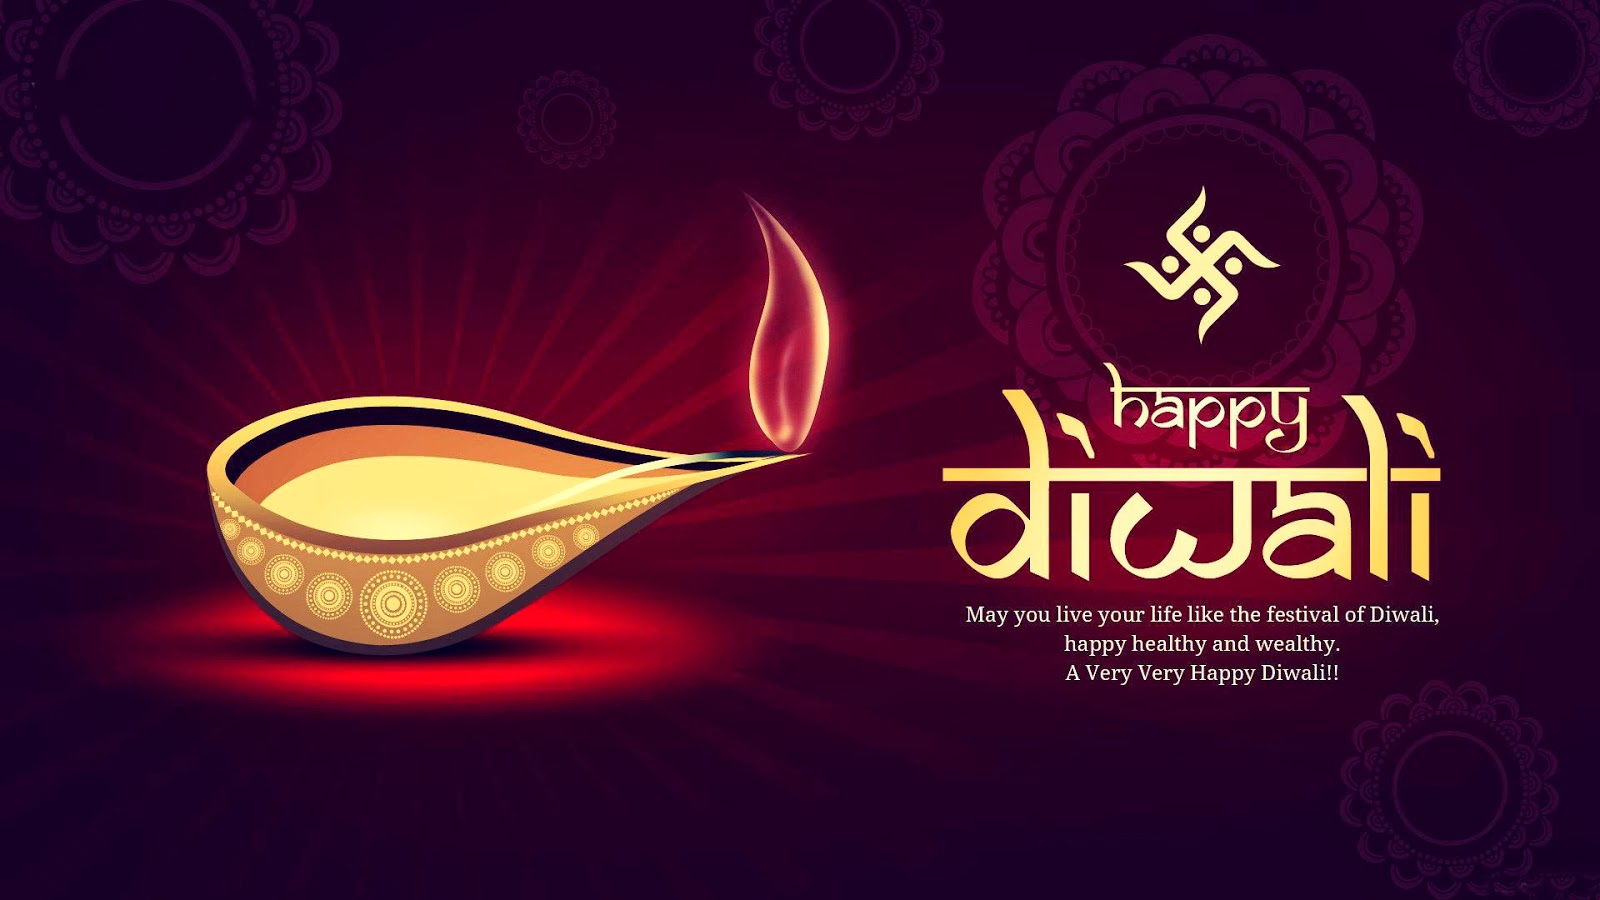 Free diwali greeting cards diwali depict messages 2015 full hd free diwali greeting cards diwali depict messages 2015 m4hsunfo